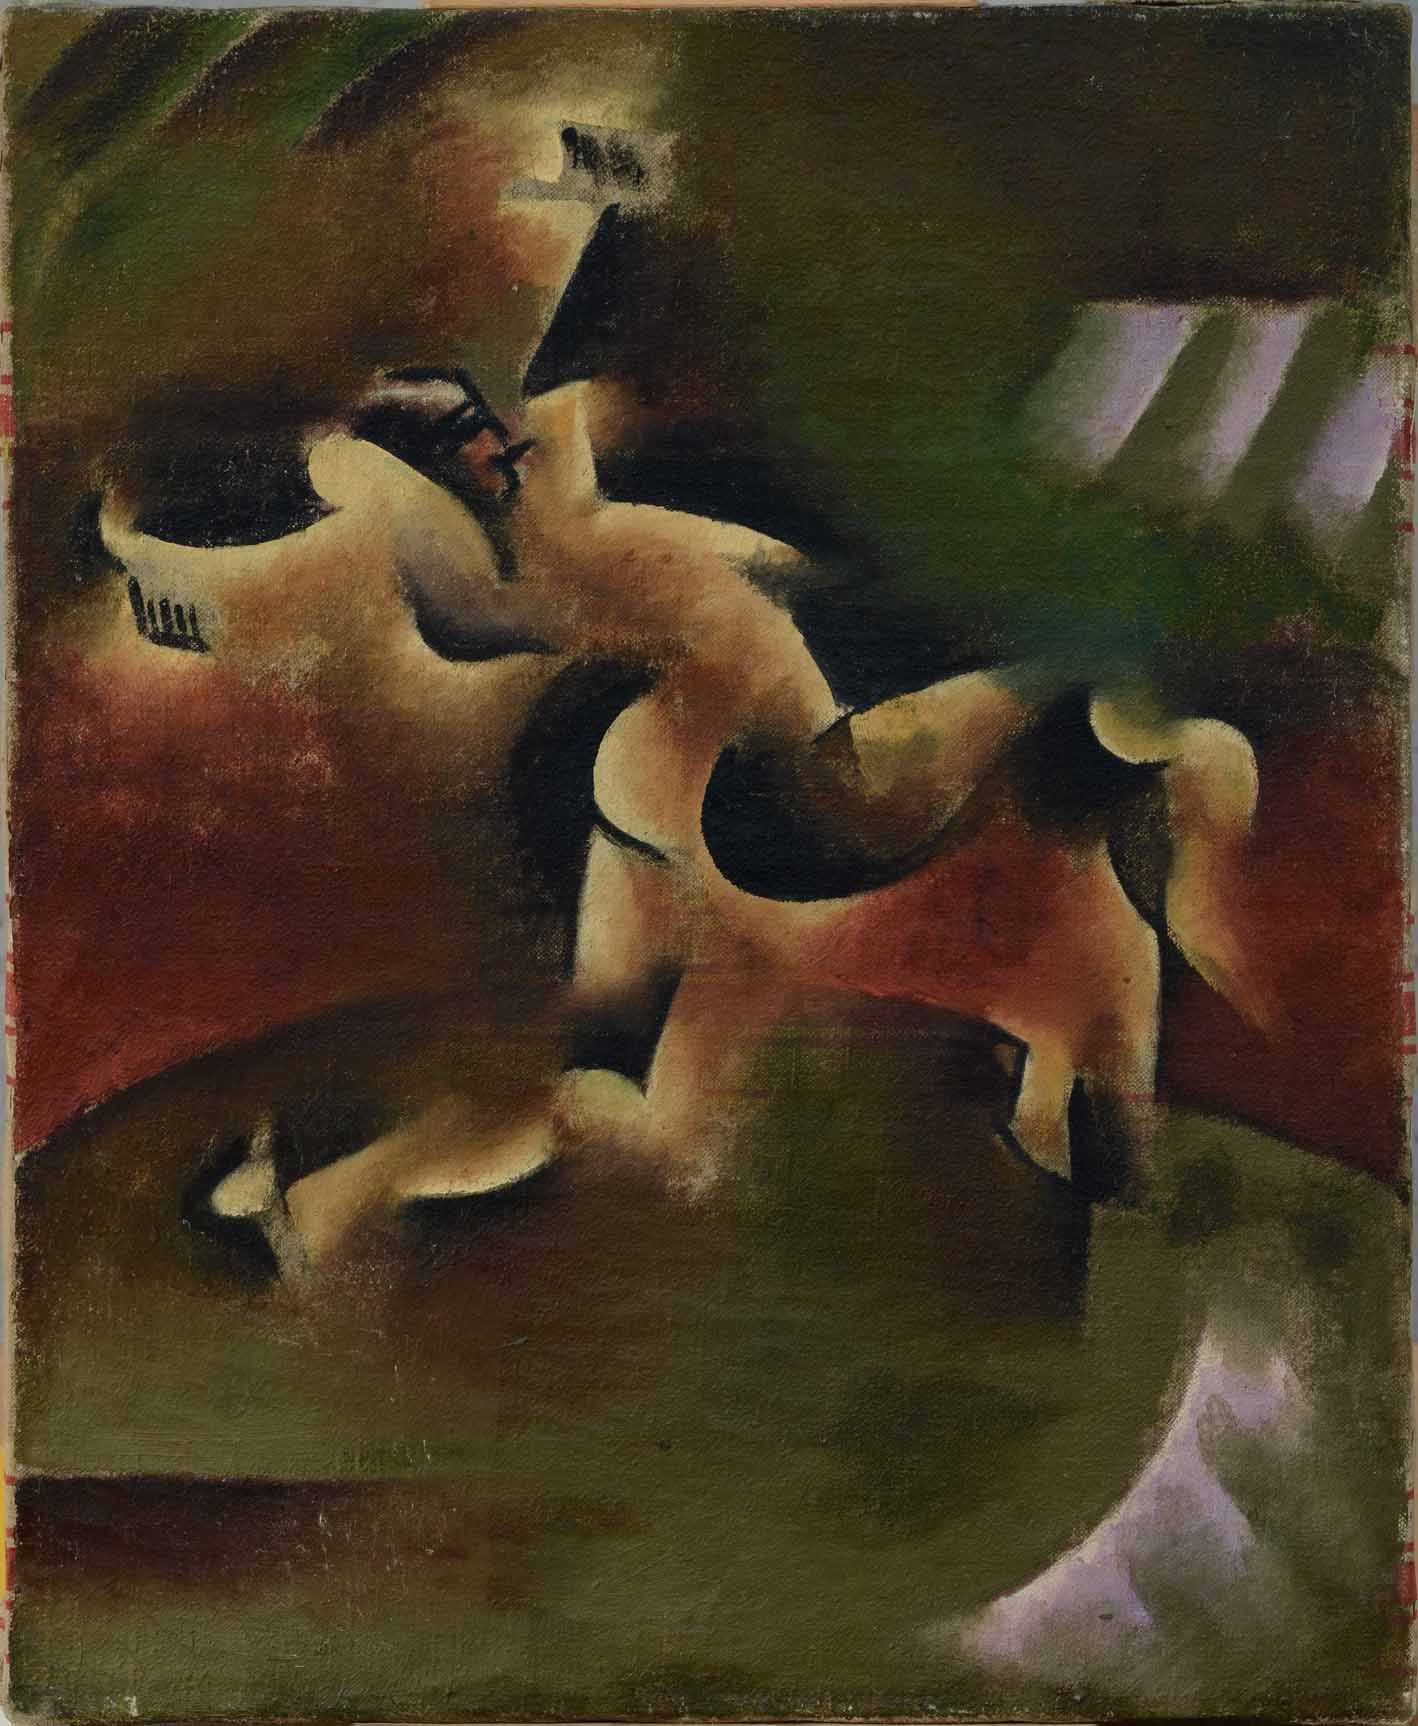 Vladimir Davidovich Baranov-Rossiné (1888–1944), Gypsy Dancer, 1914, oil on canvas, 46 x 38 cm / 18.11 x 14.96 in.